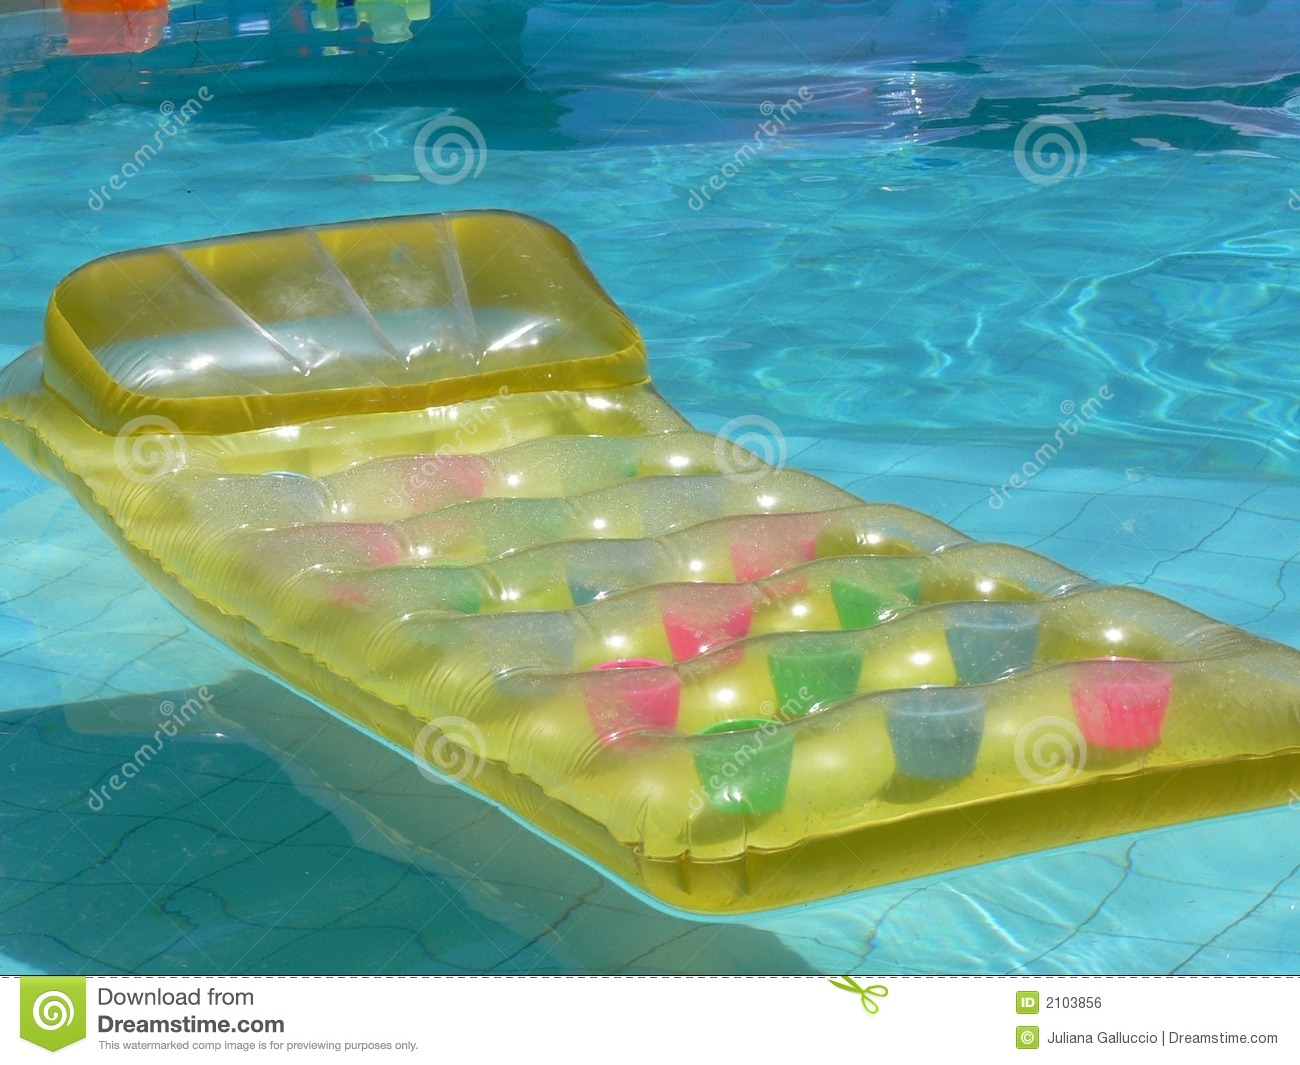 Yellow lilo stock photo  Image of empty, relax, float - 2103856